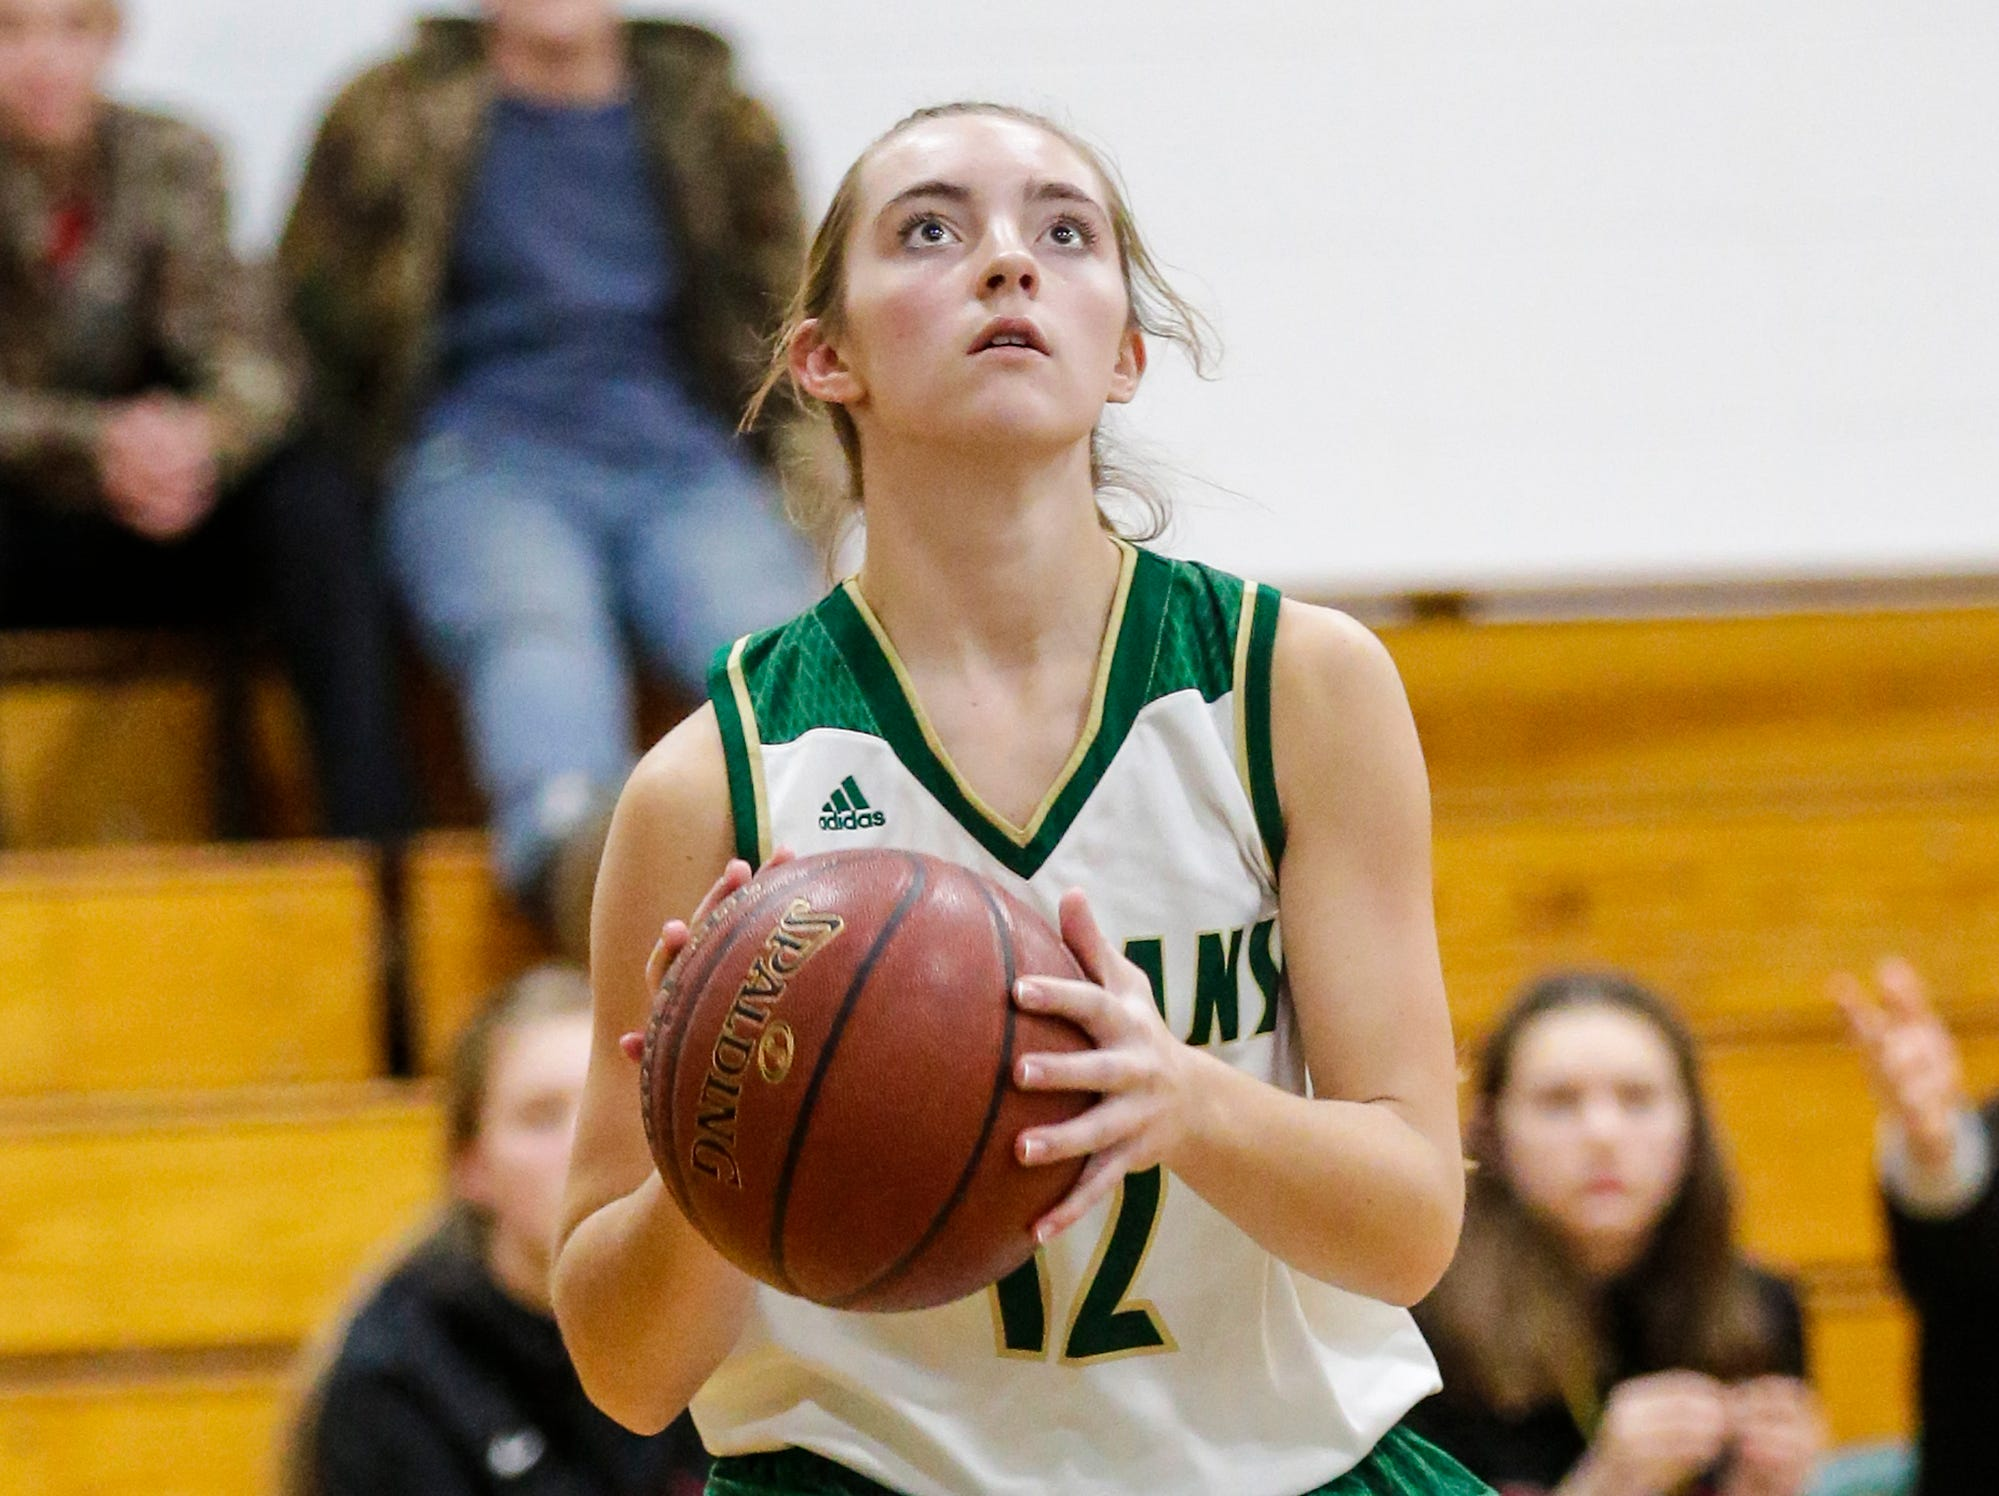 Laconia High School girls basketball's Lexy Smit attempts a basket against Mayville High School during their game Friday, November 30, 2018 in Rosendale. Doug Raflik/USA TODAY NETWORK-Wisconsin